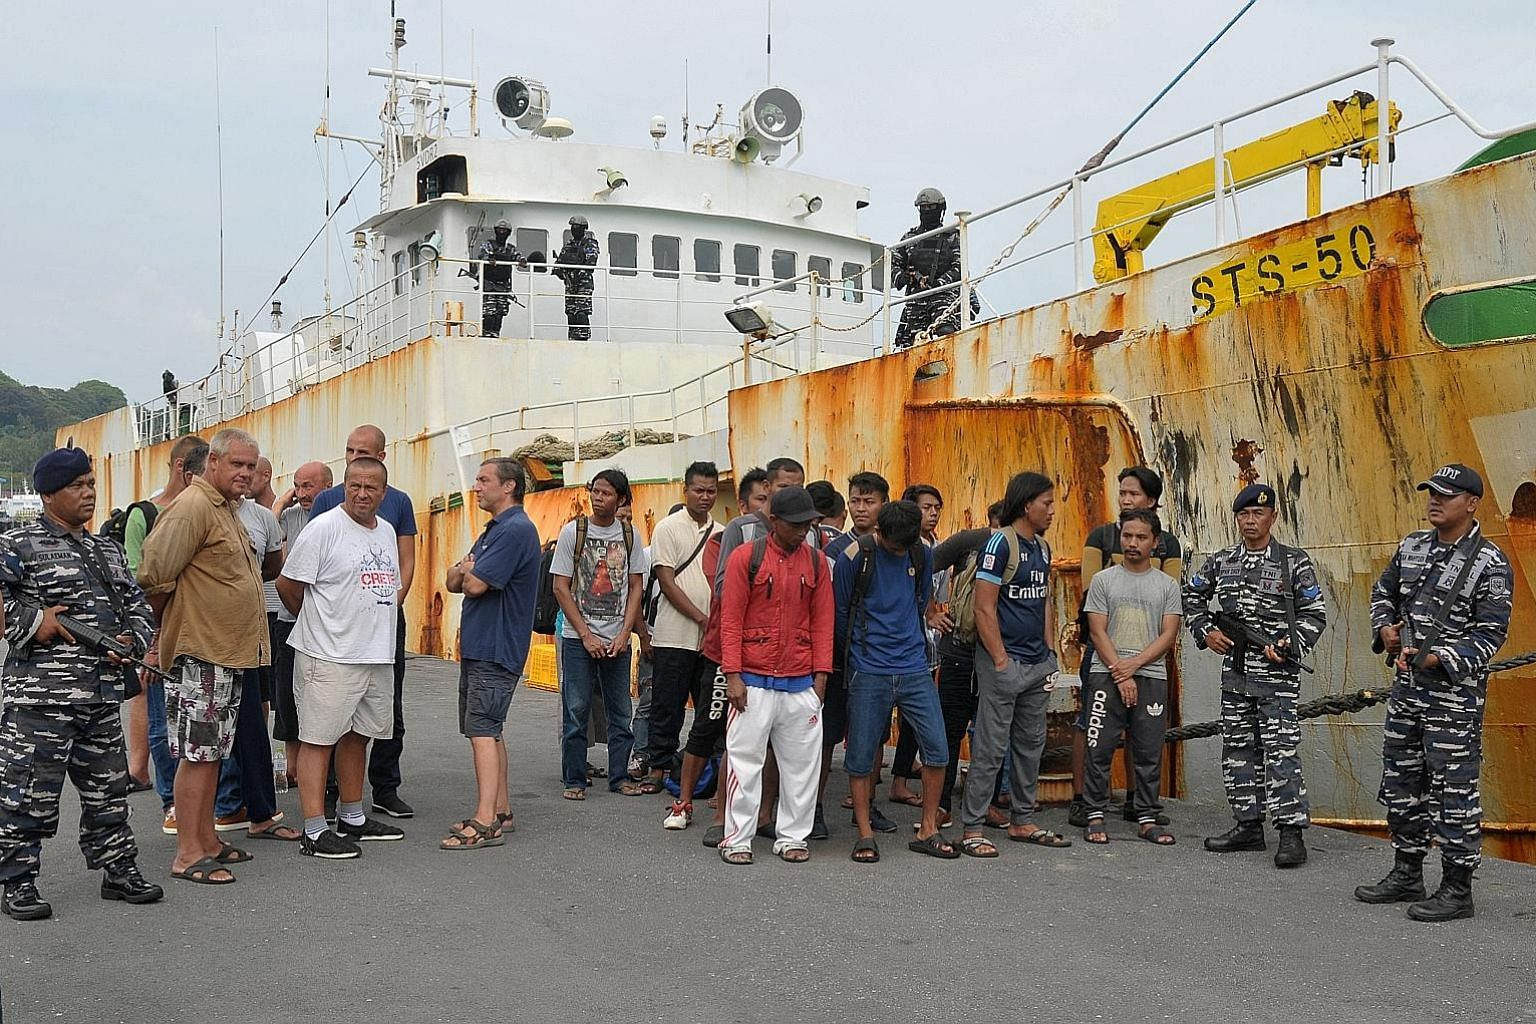 Indonesian navy personnel guarding the detained crew of the stateless STS-50 fishing boat in Sabang, Indonesia, on April 7. Its mostly-Indonesian crew said they had not been paid and that their passports and other documents had been taken away when t